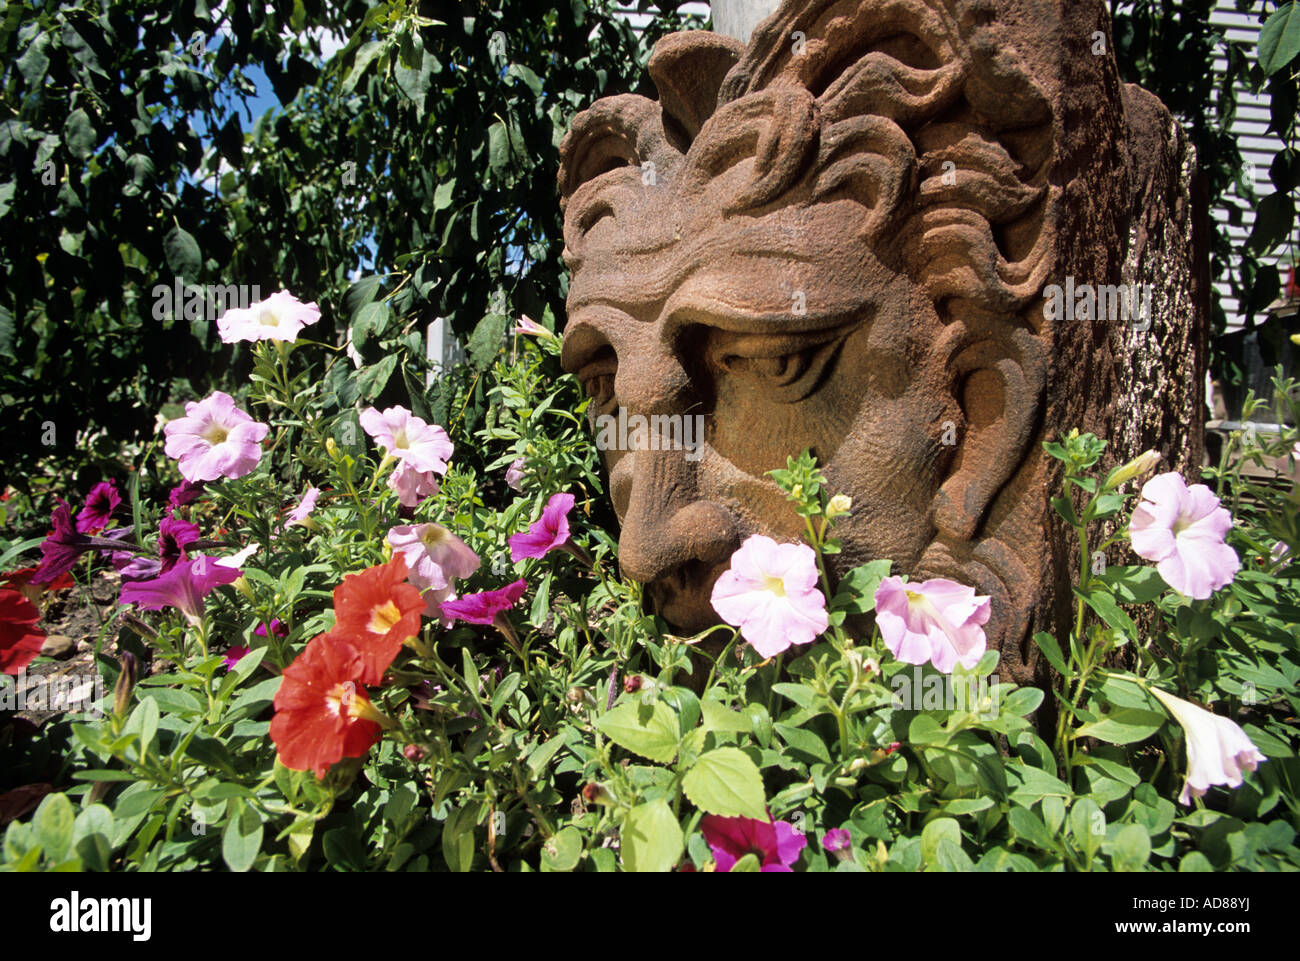 ANTIQUE KETTLE RIVER SANDSTONE GARGOYLE SURROUNDED BY PETUNIAS Stock ...